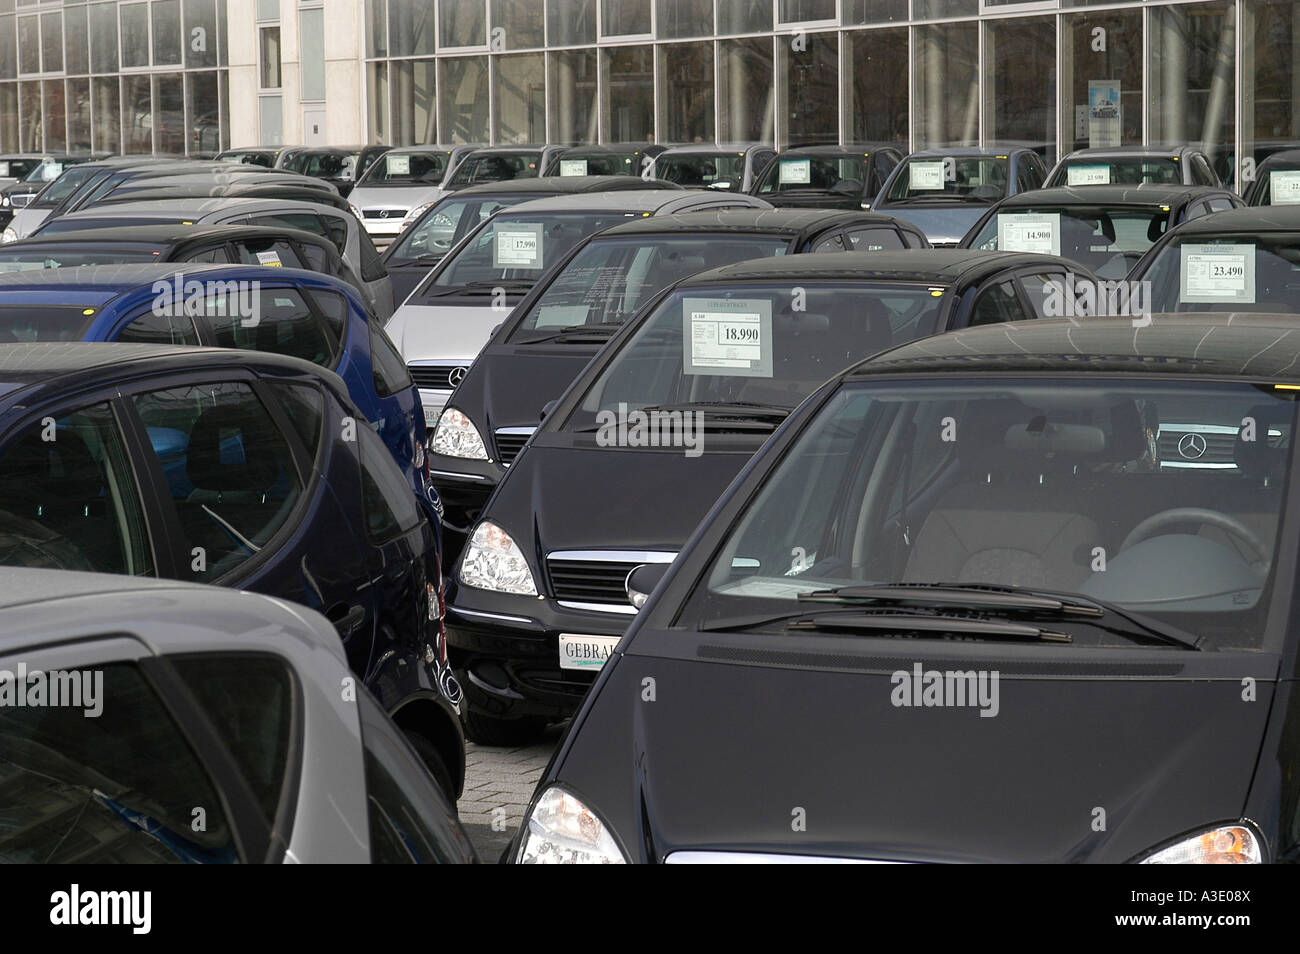 Mercedes car sale in front of the office building of Mercedes Benz, Berlin, Germany Stock Photo